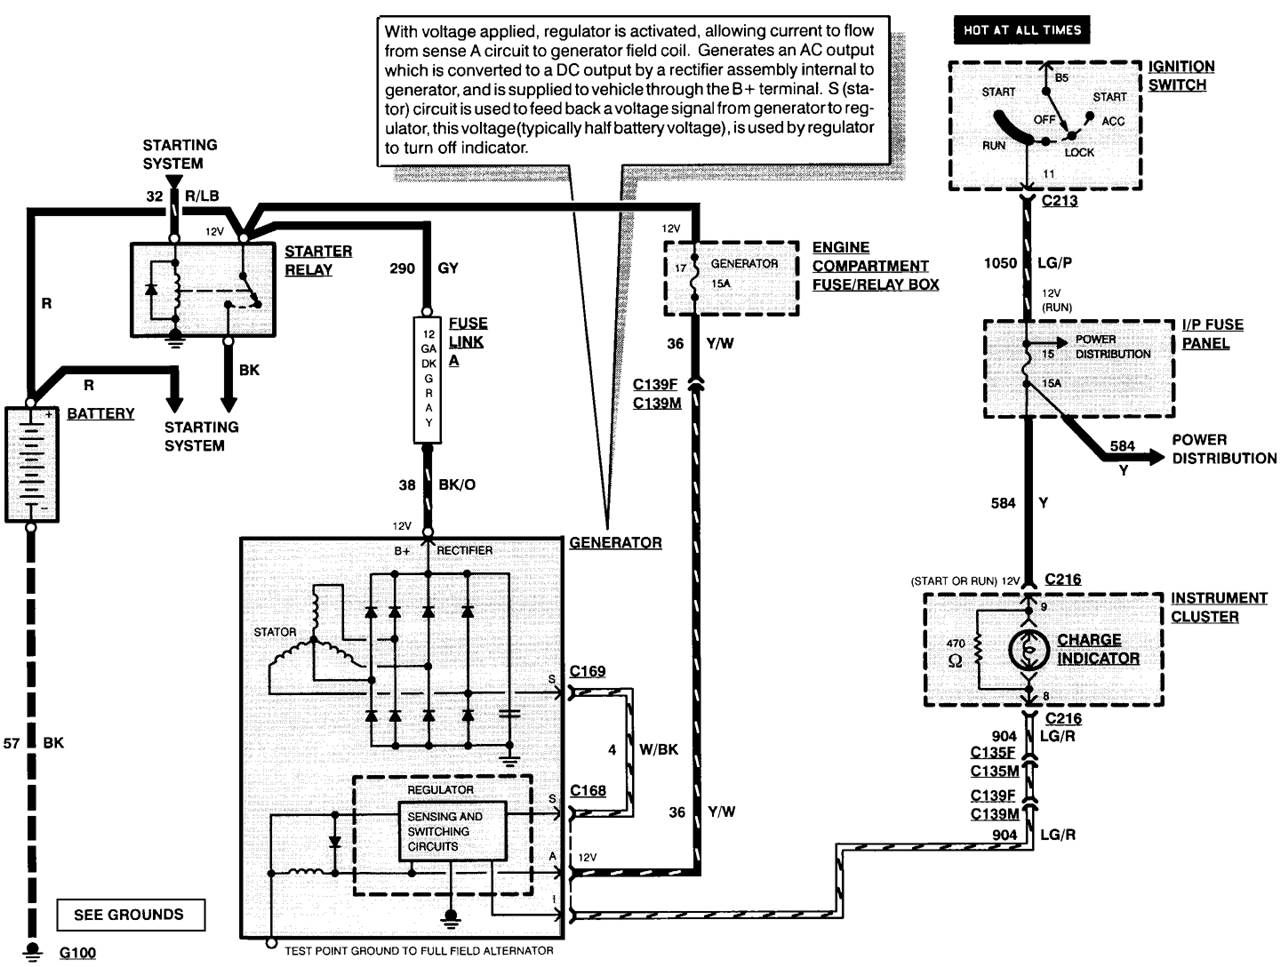 Ford Alternator Wiring Diagrams Carsut Understand Cars And Drive Ford Alternator  Wiring Ford Alternator Diagram